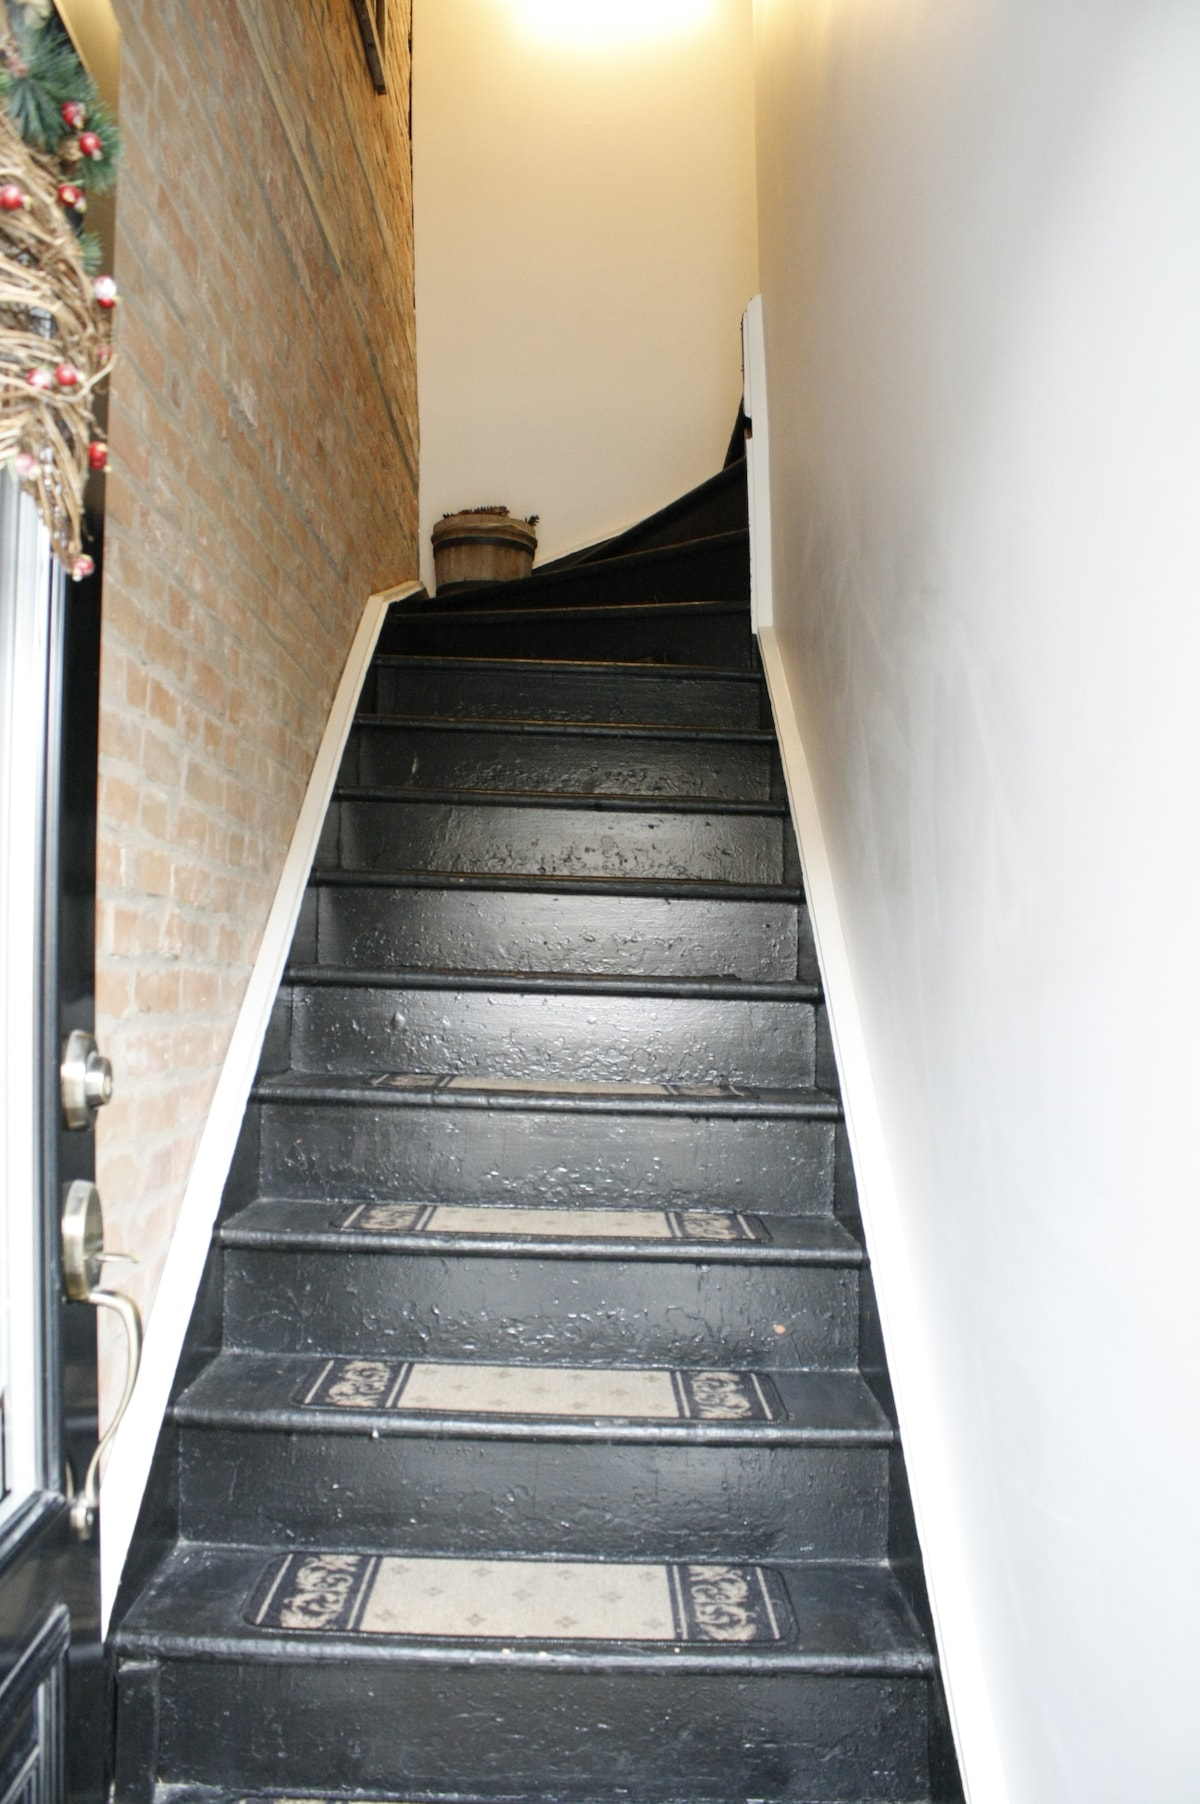 Stairs leading to the 3rd floor apartment